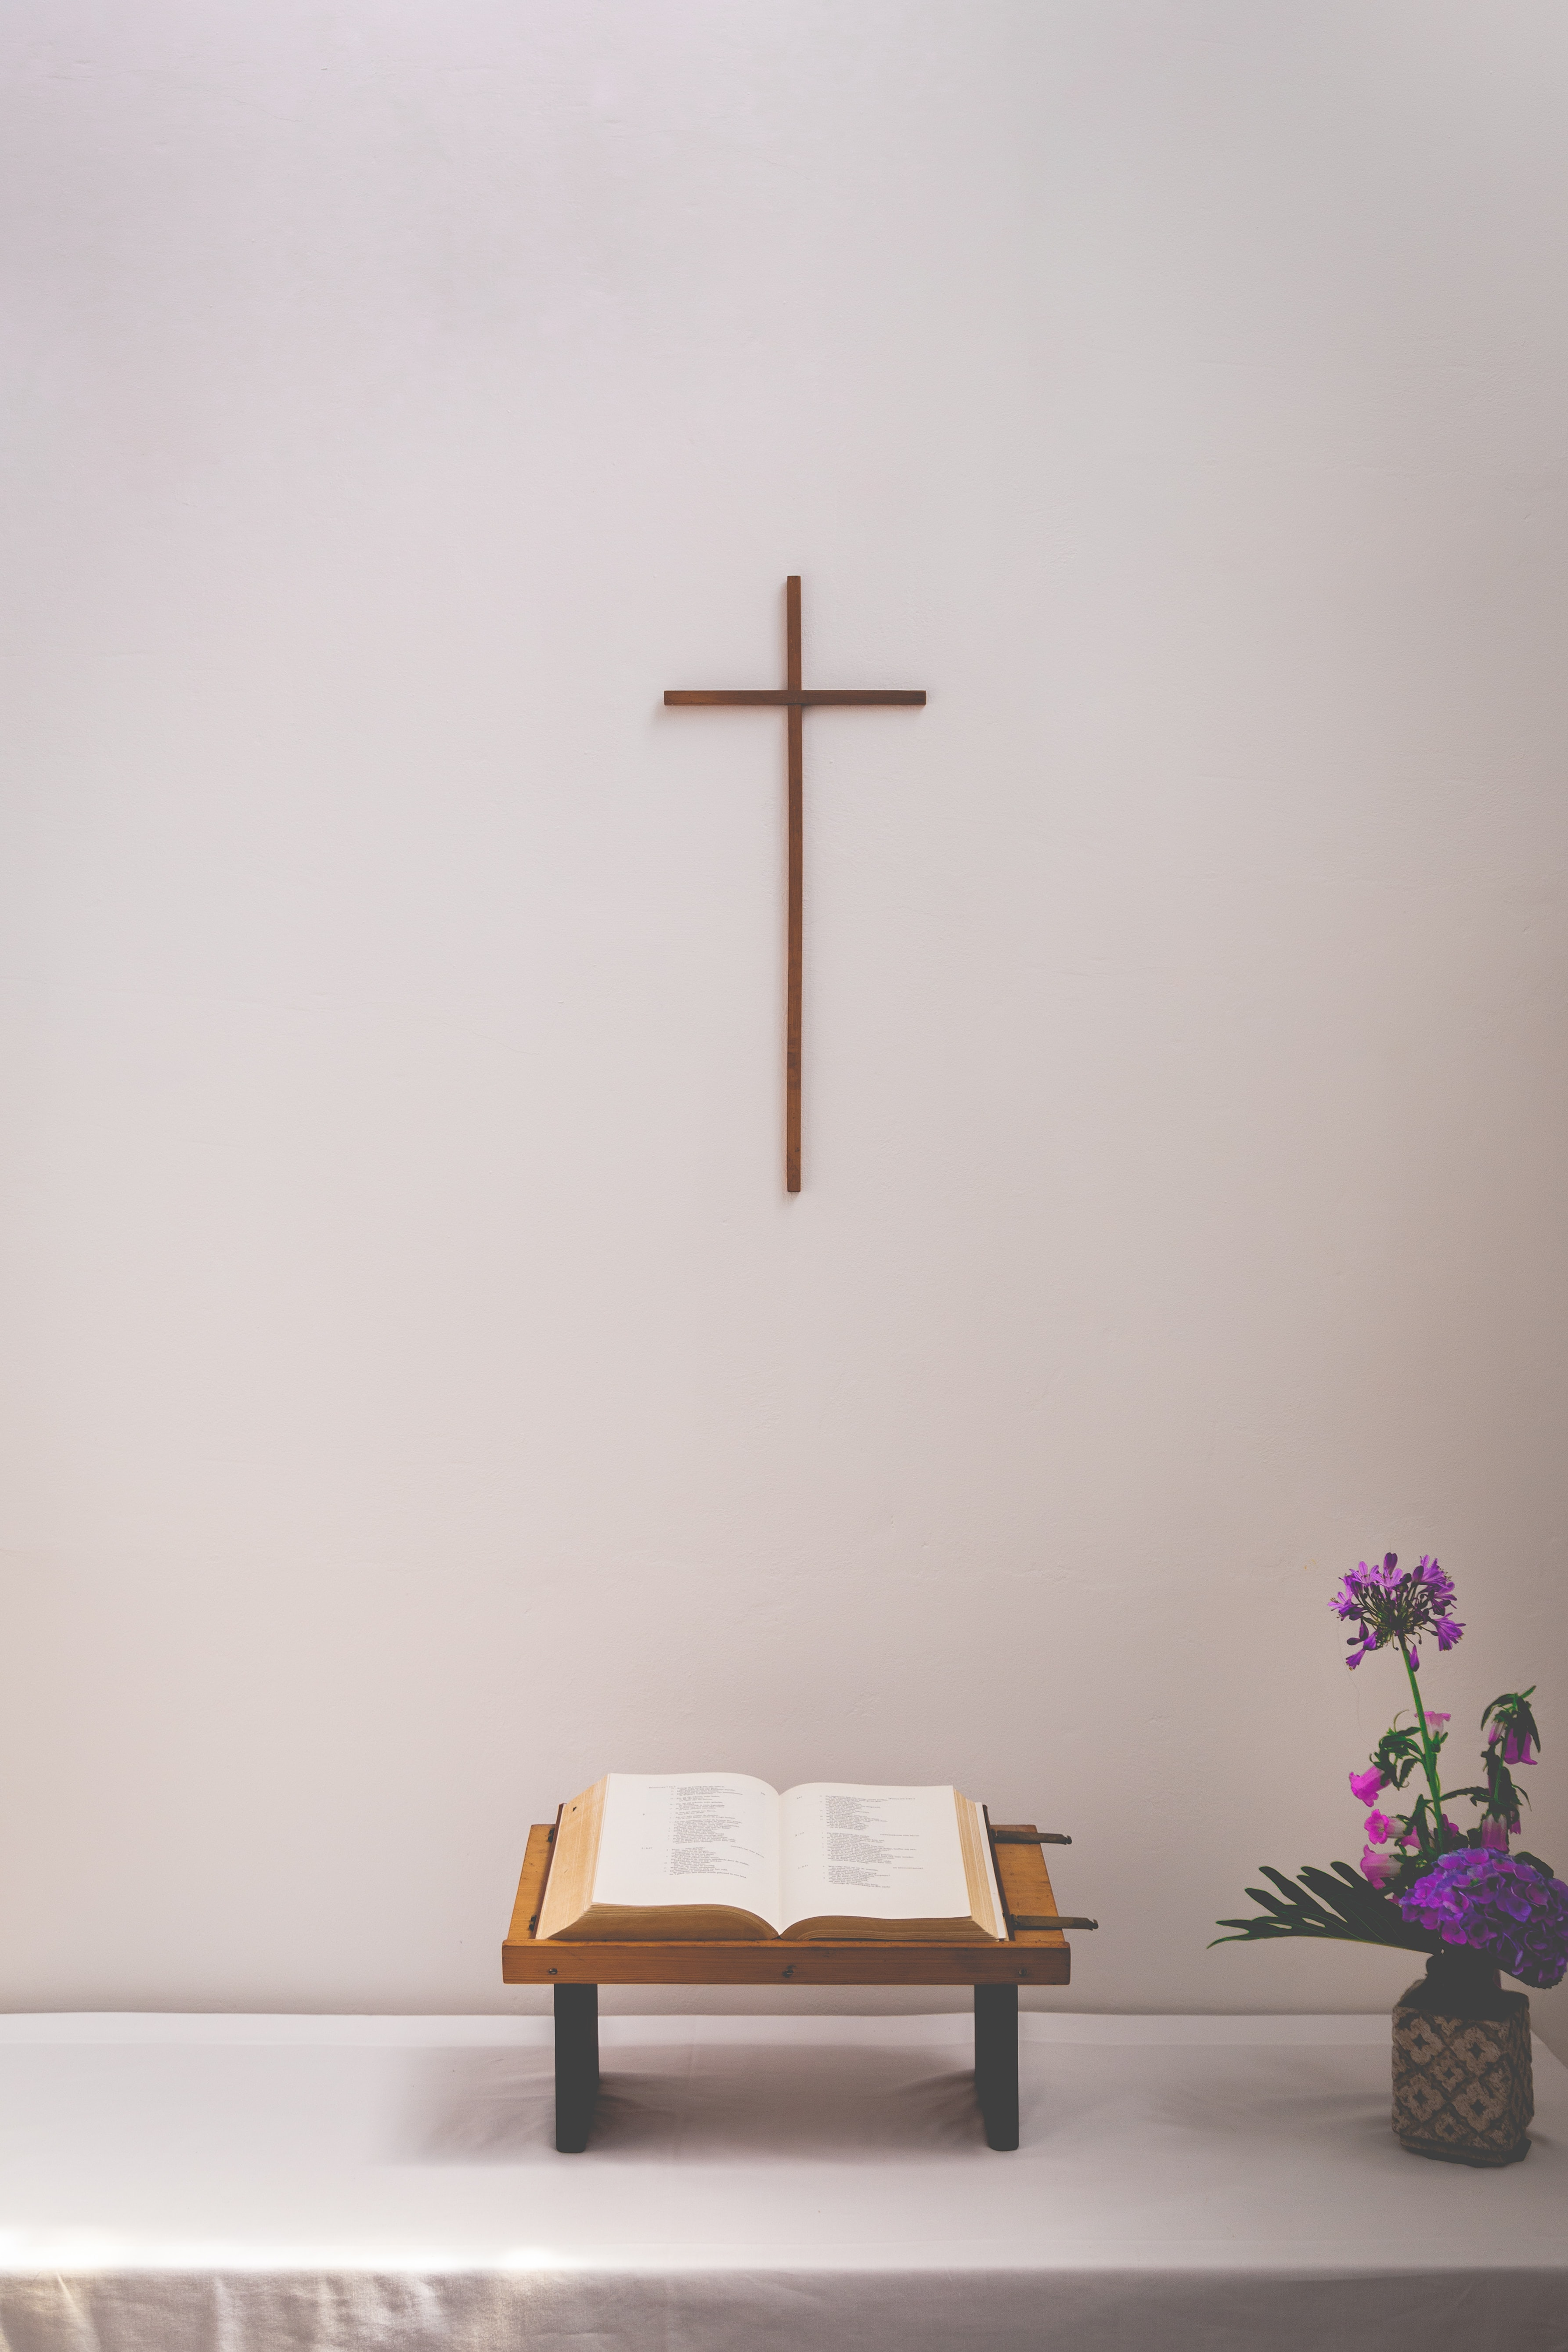 bible on stand under cross on wall